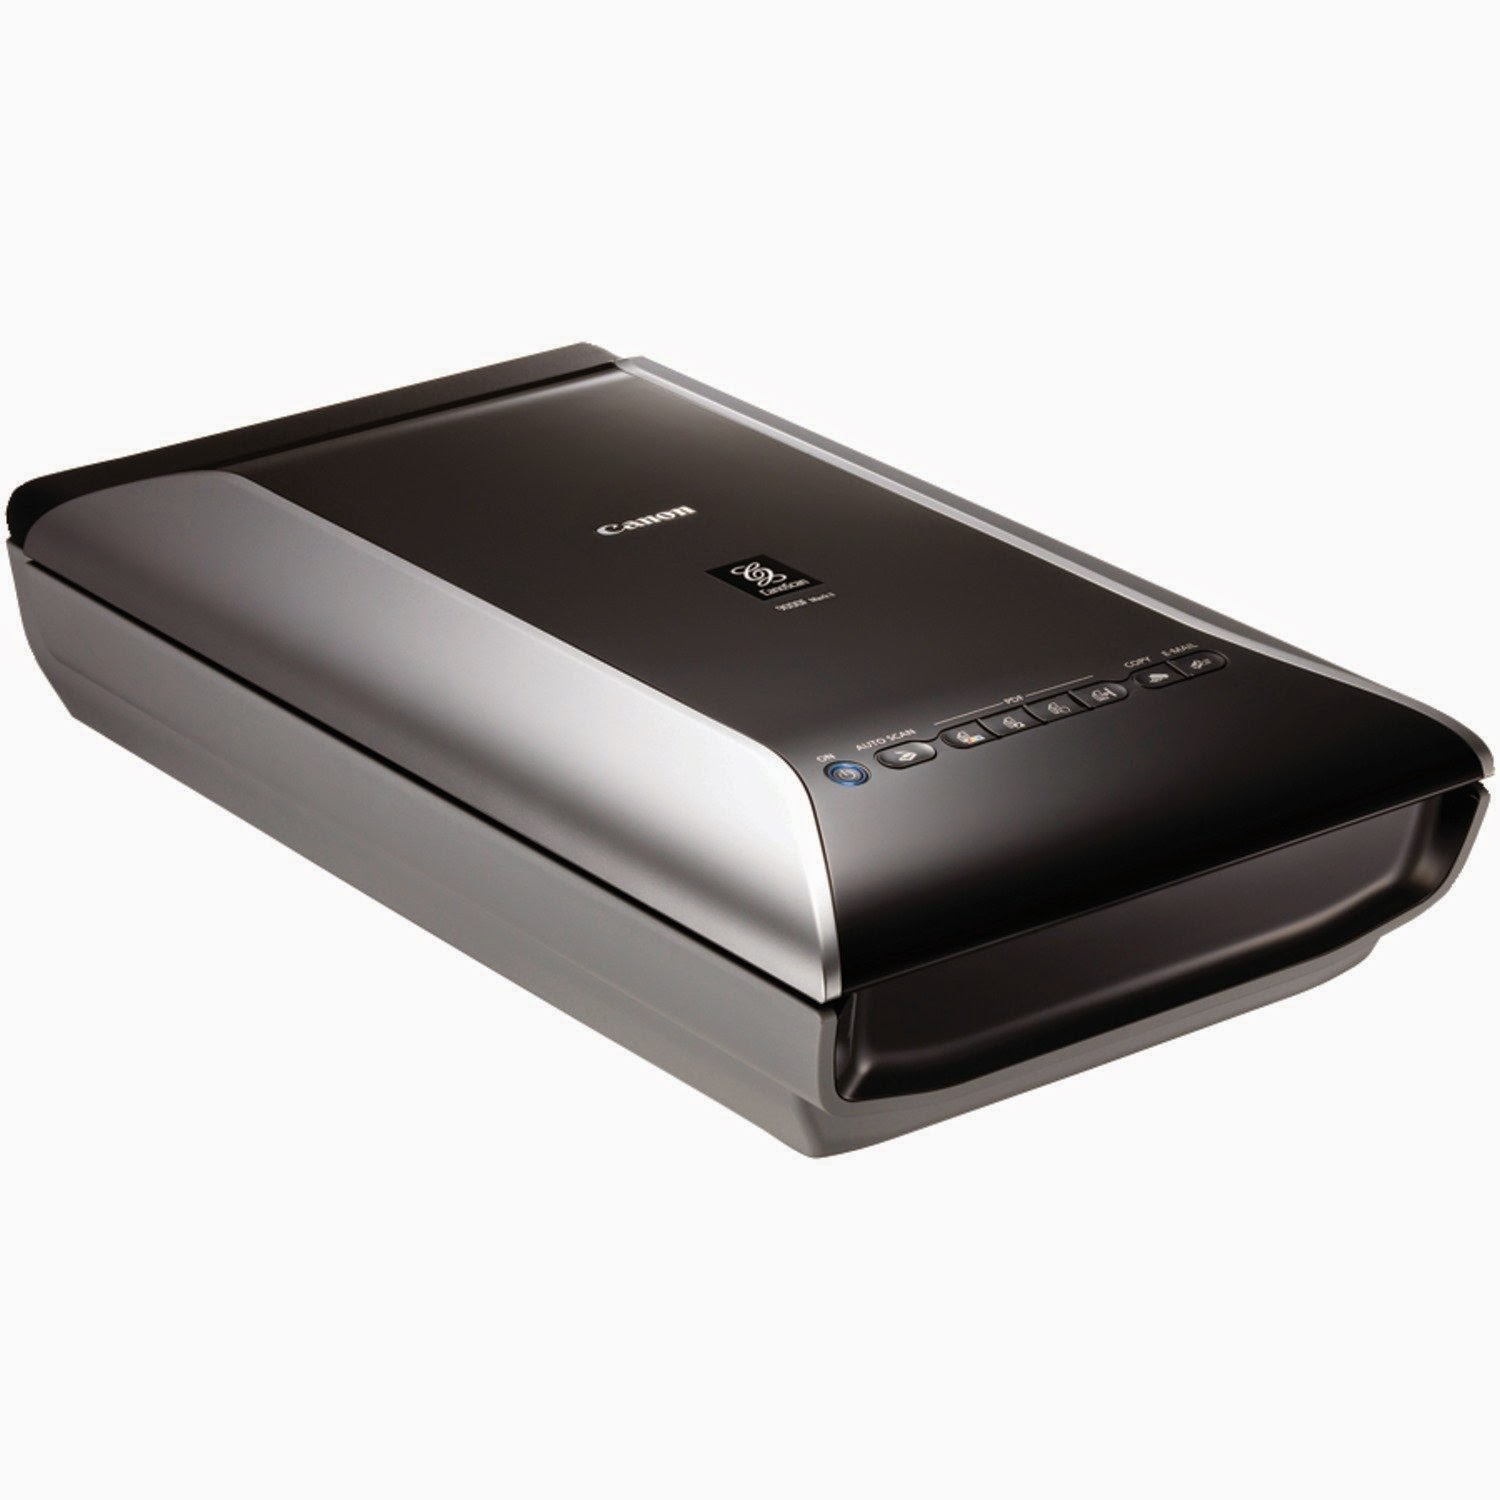 Buy the Canon CanoScan 9000F Mark II color image scanner on Amazon.com